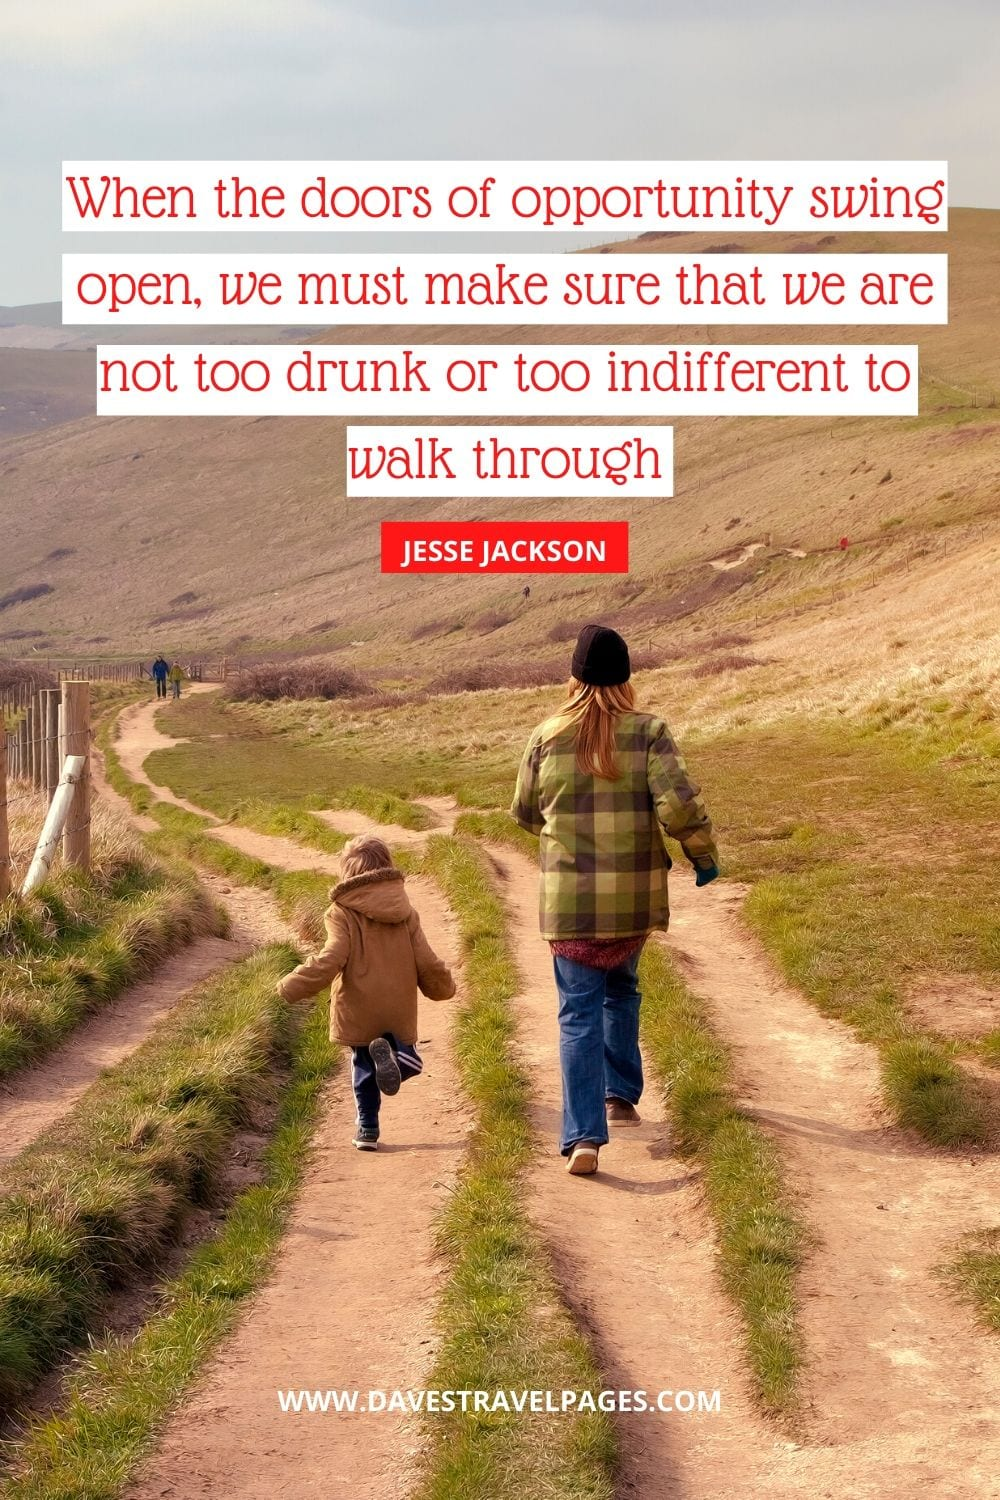 Motivational Quotes: When the doors of opportunity swing open, we must make sure that we are not too drunk or too indifferent to walk through - Jesse Jackson